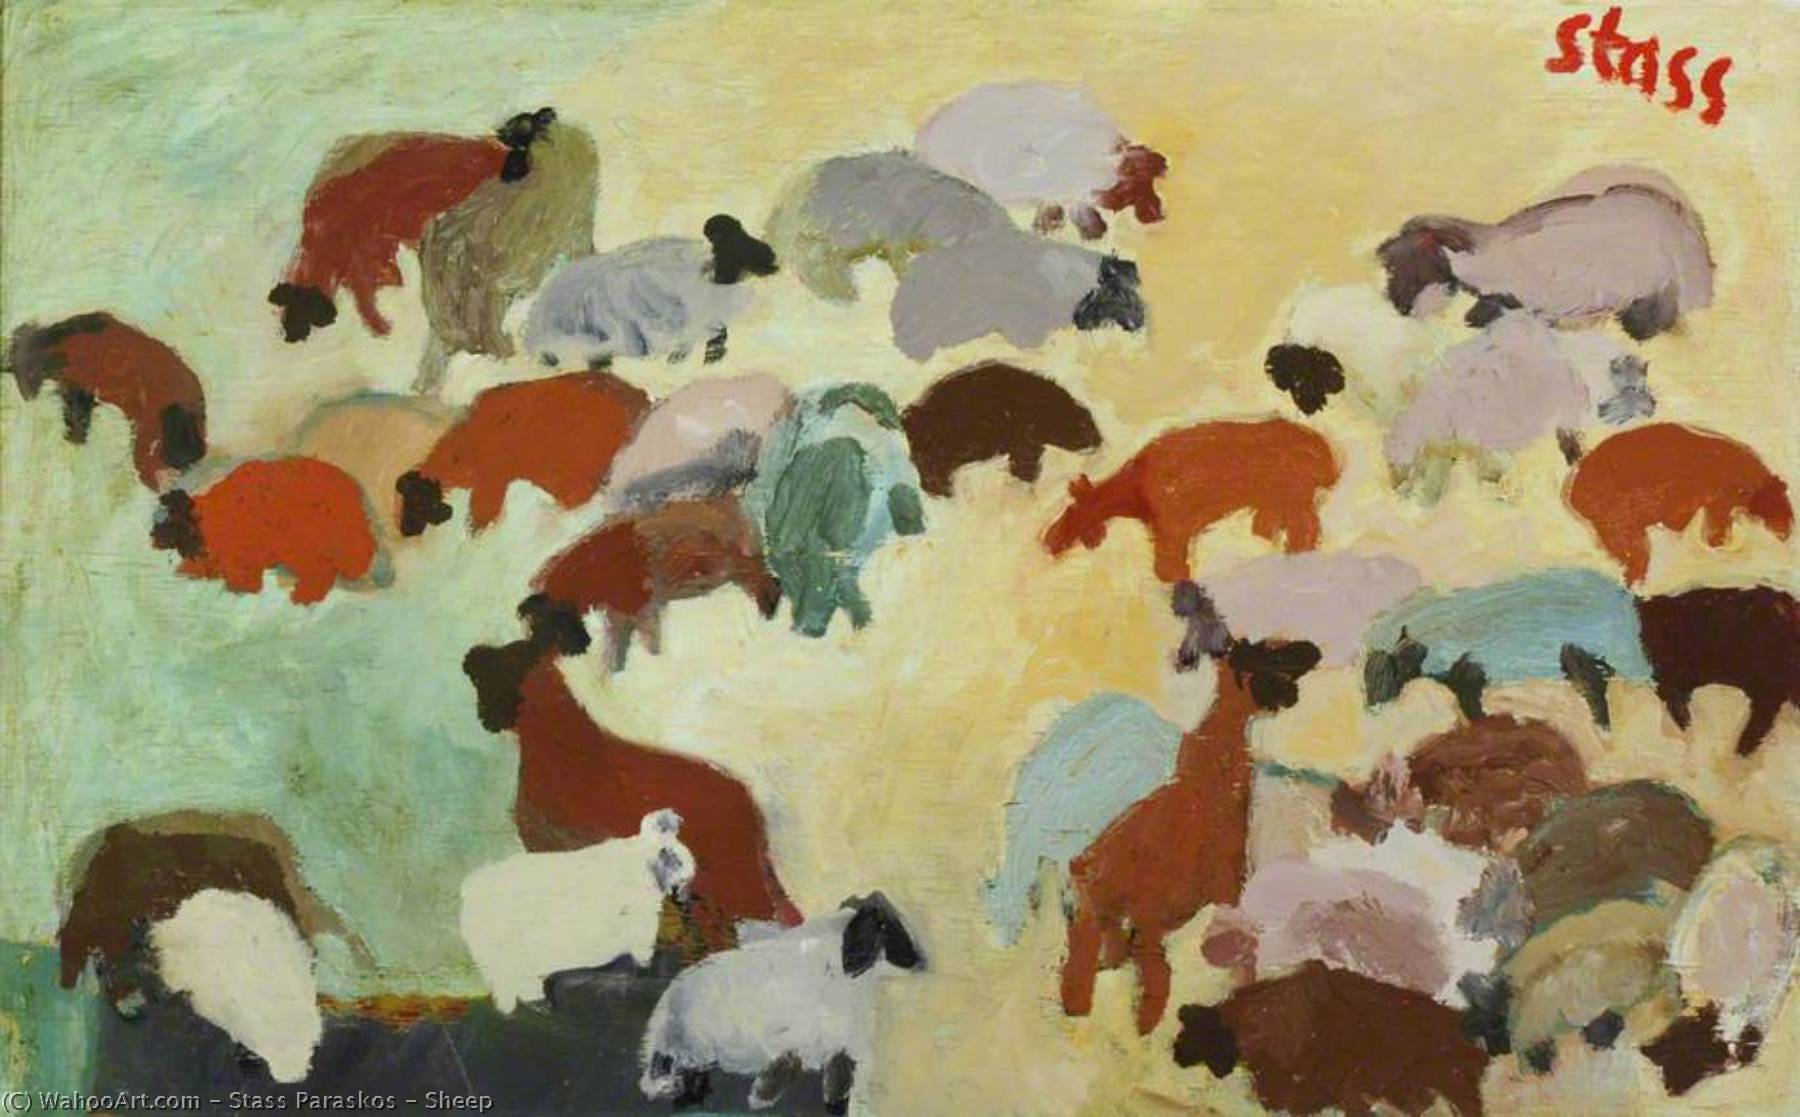 Order Reproductions | Sheep by Stass Paraskos | Most-Famous-Paintings.com